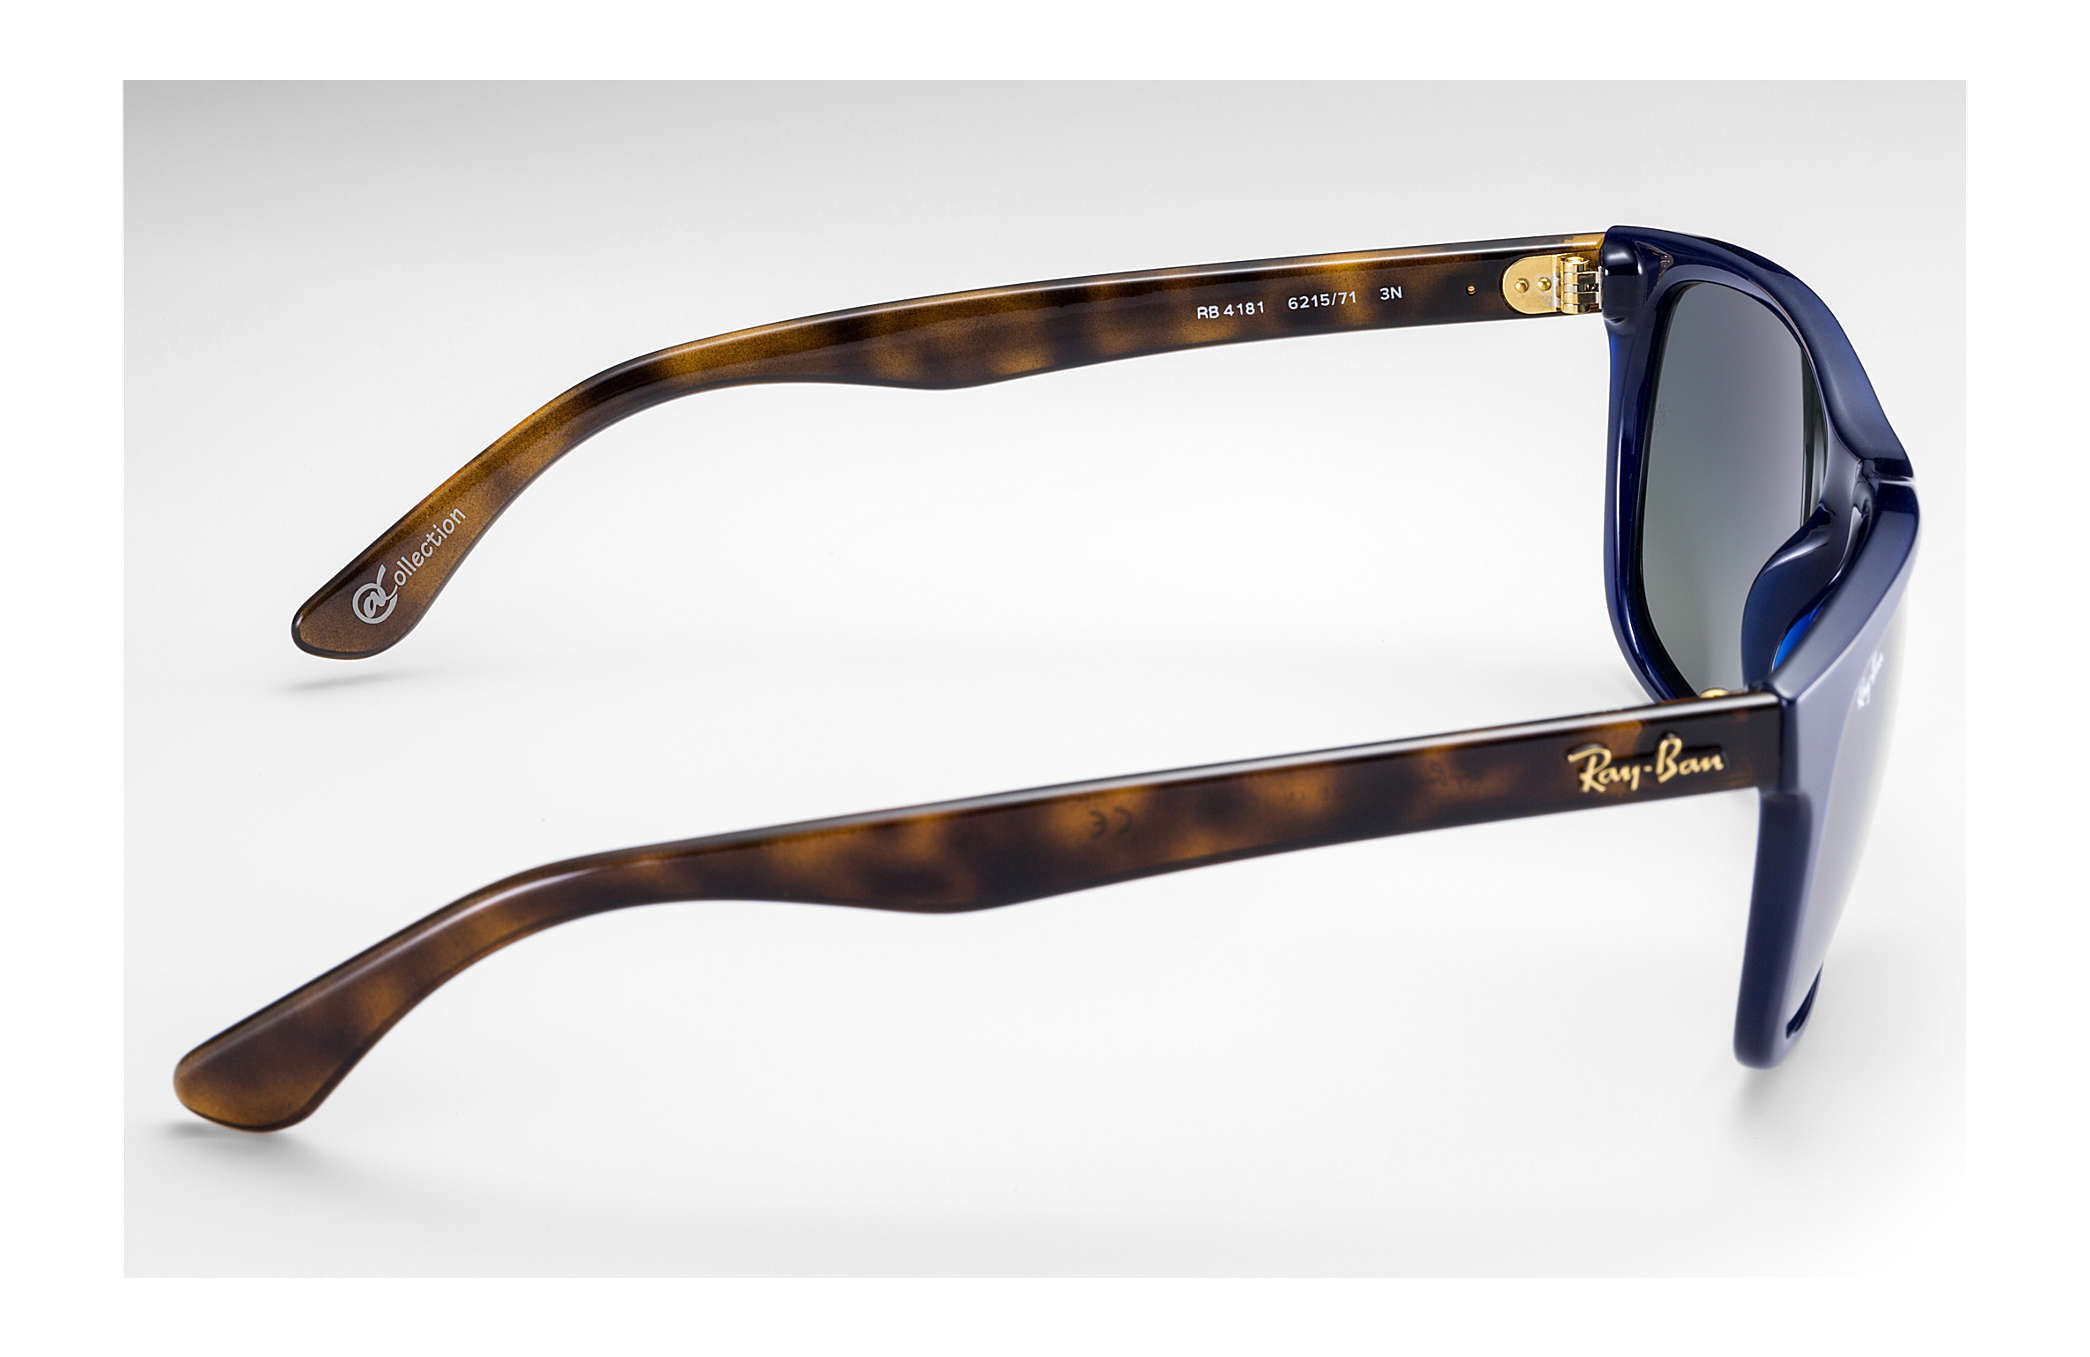 761a576d91 Ray-Ban Rb4181  collection RB4181 Tortoise - Nylon - Silver Lenses ...